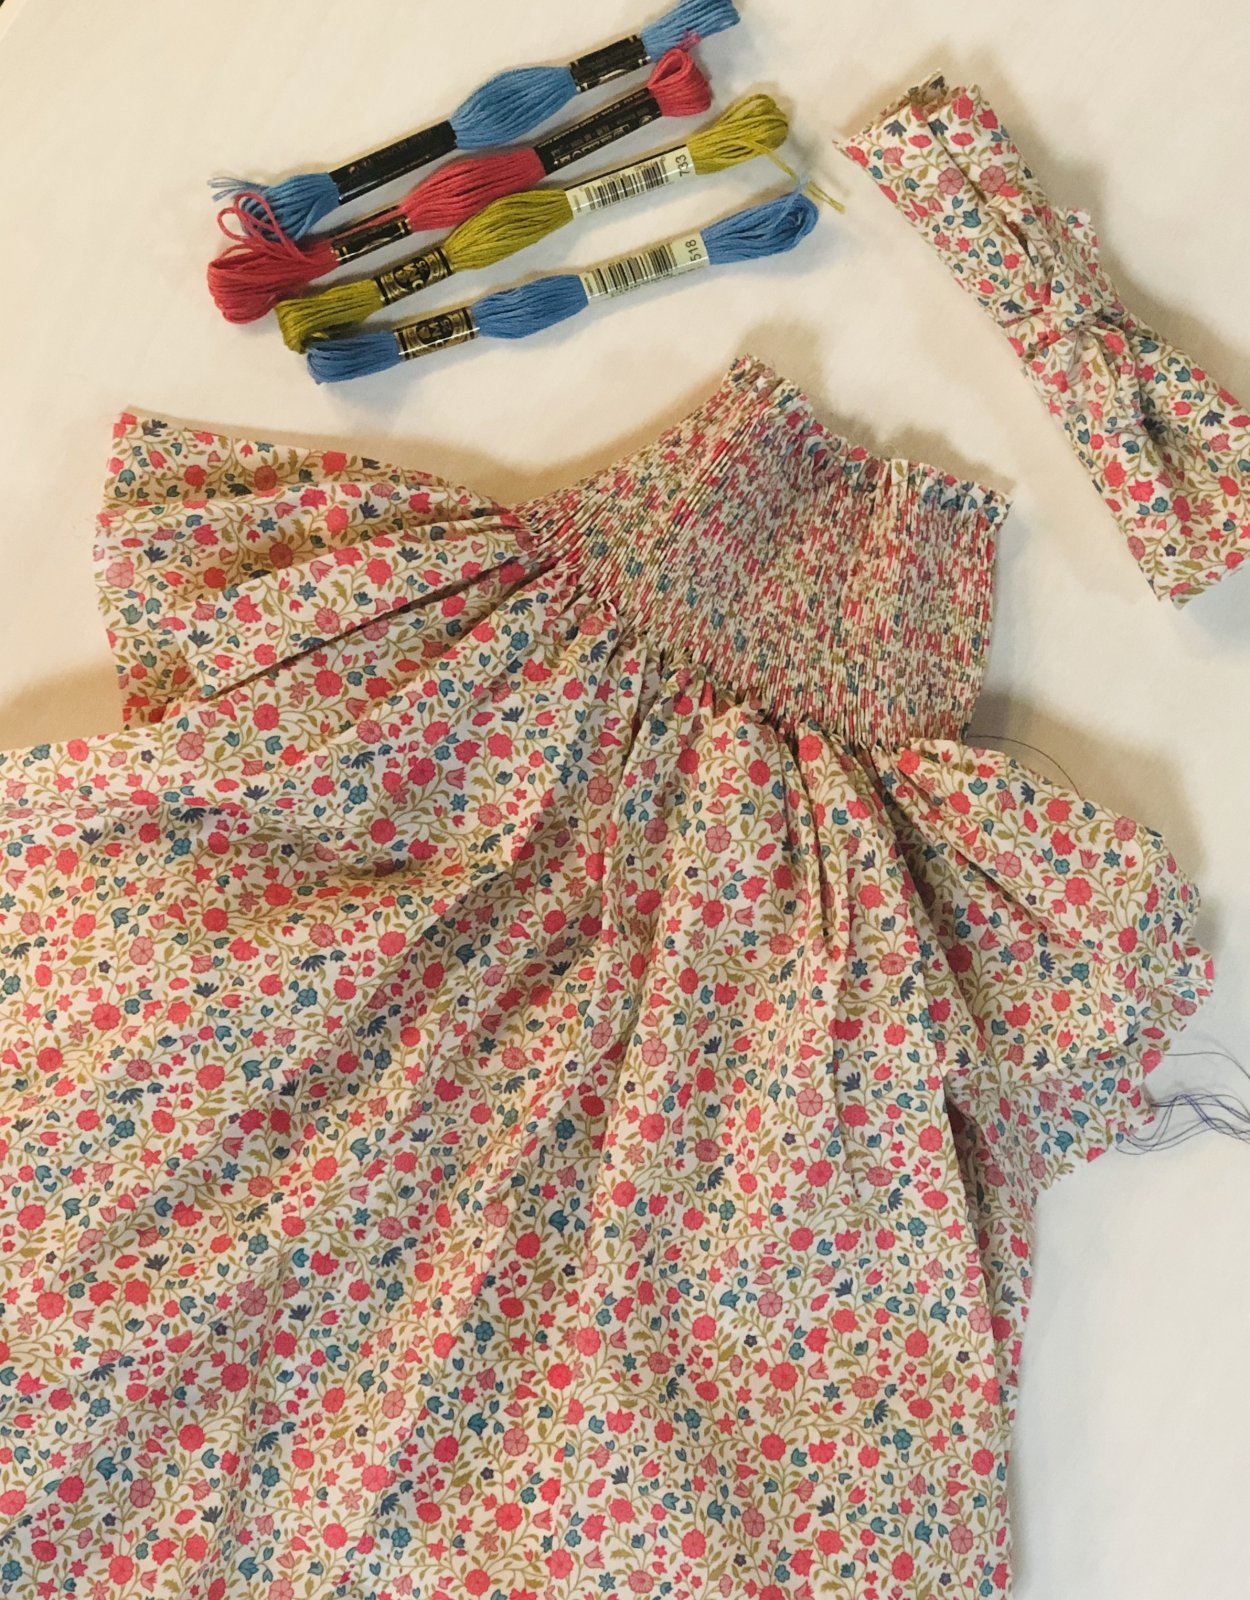 Bishop Kit Size 18 Month - Queen's Gallery Liberty of London Tana Lawn Floral Print Fabric